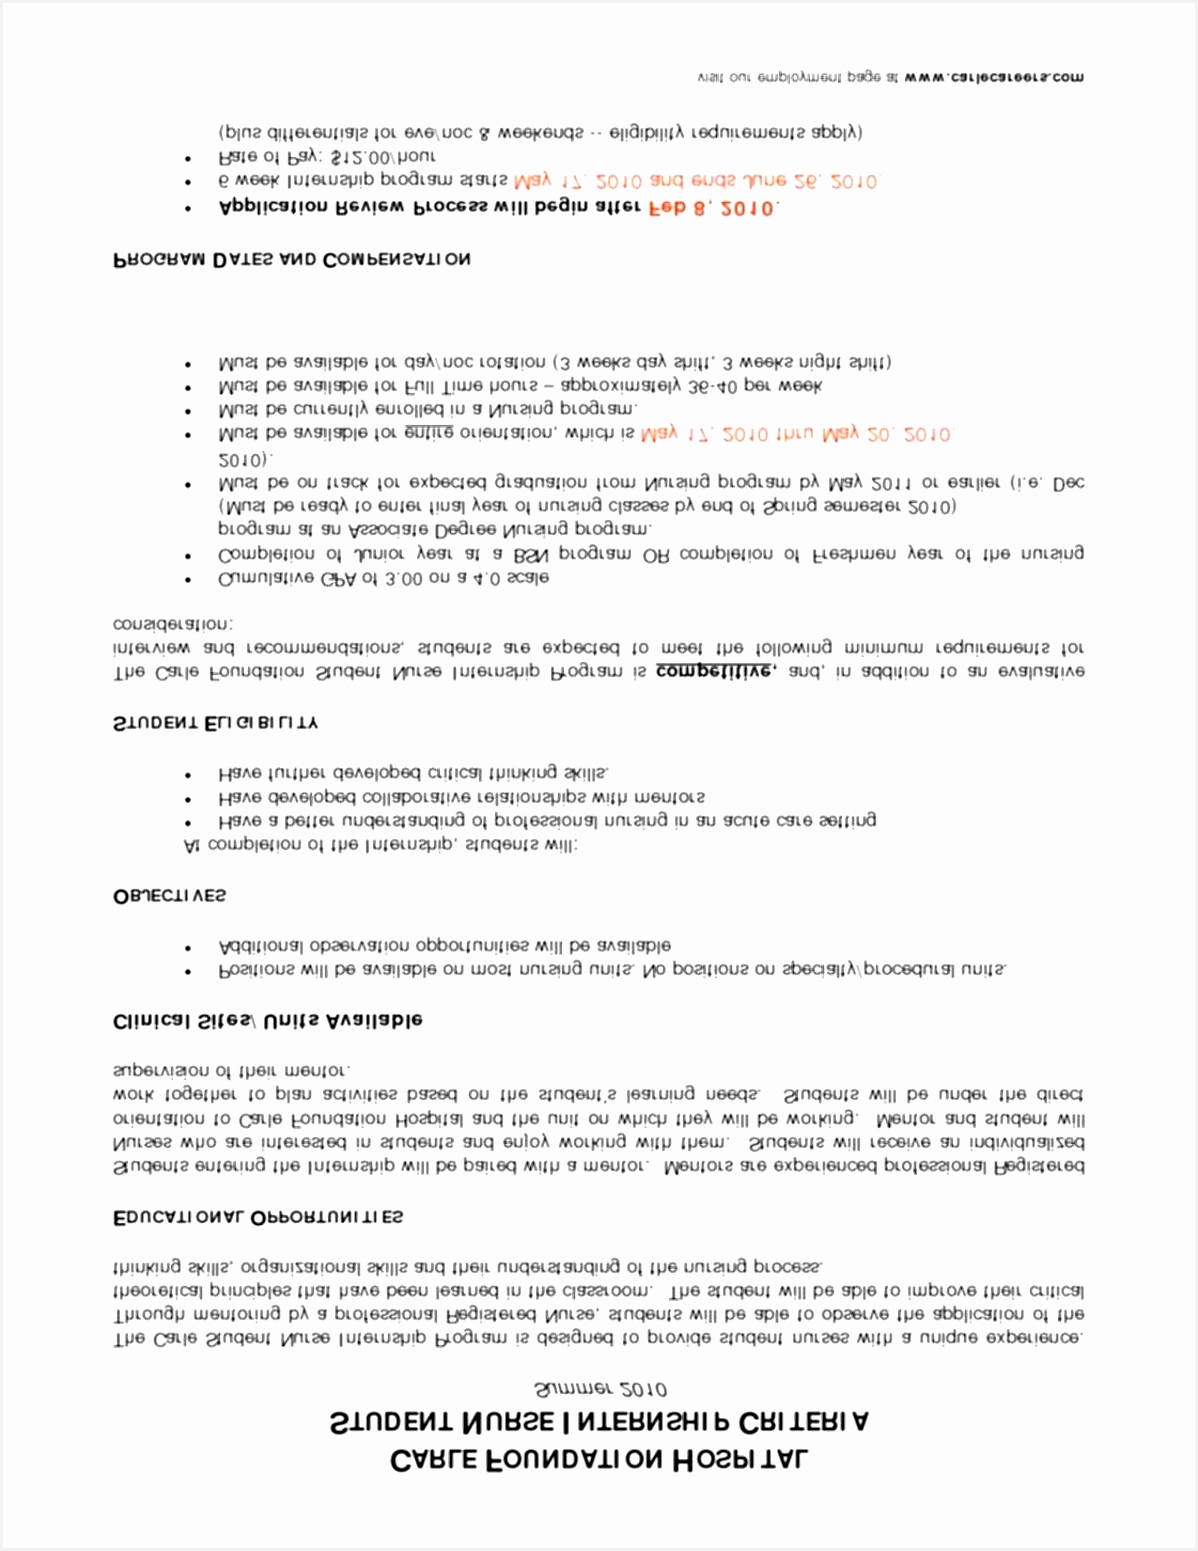 Resume Examples for Dental assistant New Sample Resume for Dental assistant with No Experience Professional 15511198addiy